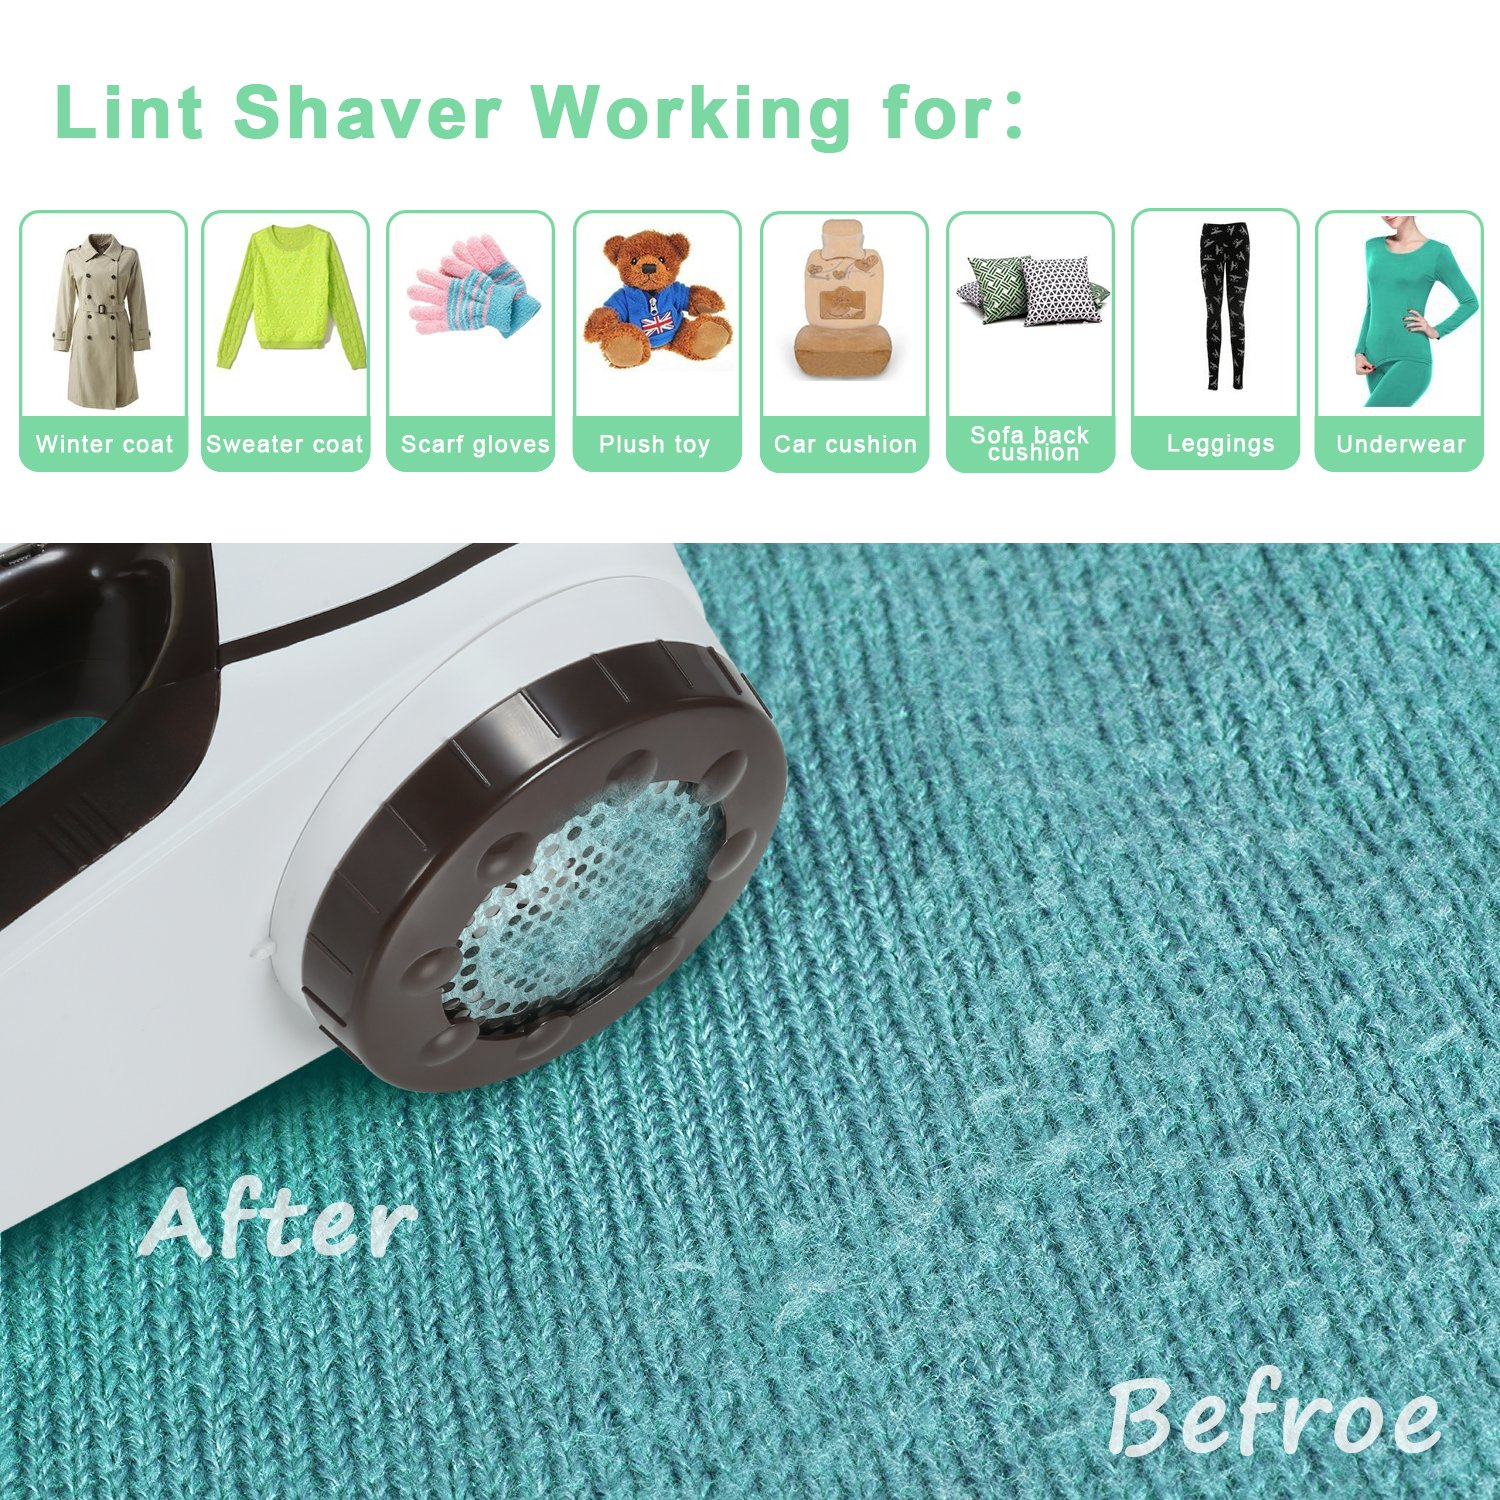 Lint Remover Electric HOMEASY Rechargeable Fabric Shaver Fuzz Bobbles Removing Machine for Sweater Clothes Knitwear Carpet Blankets etc [2 Years Warranty]